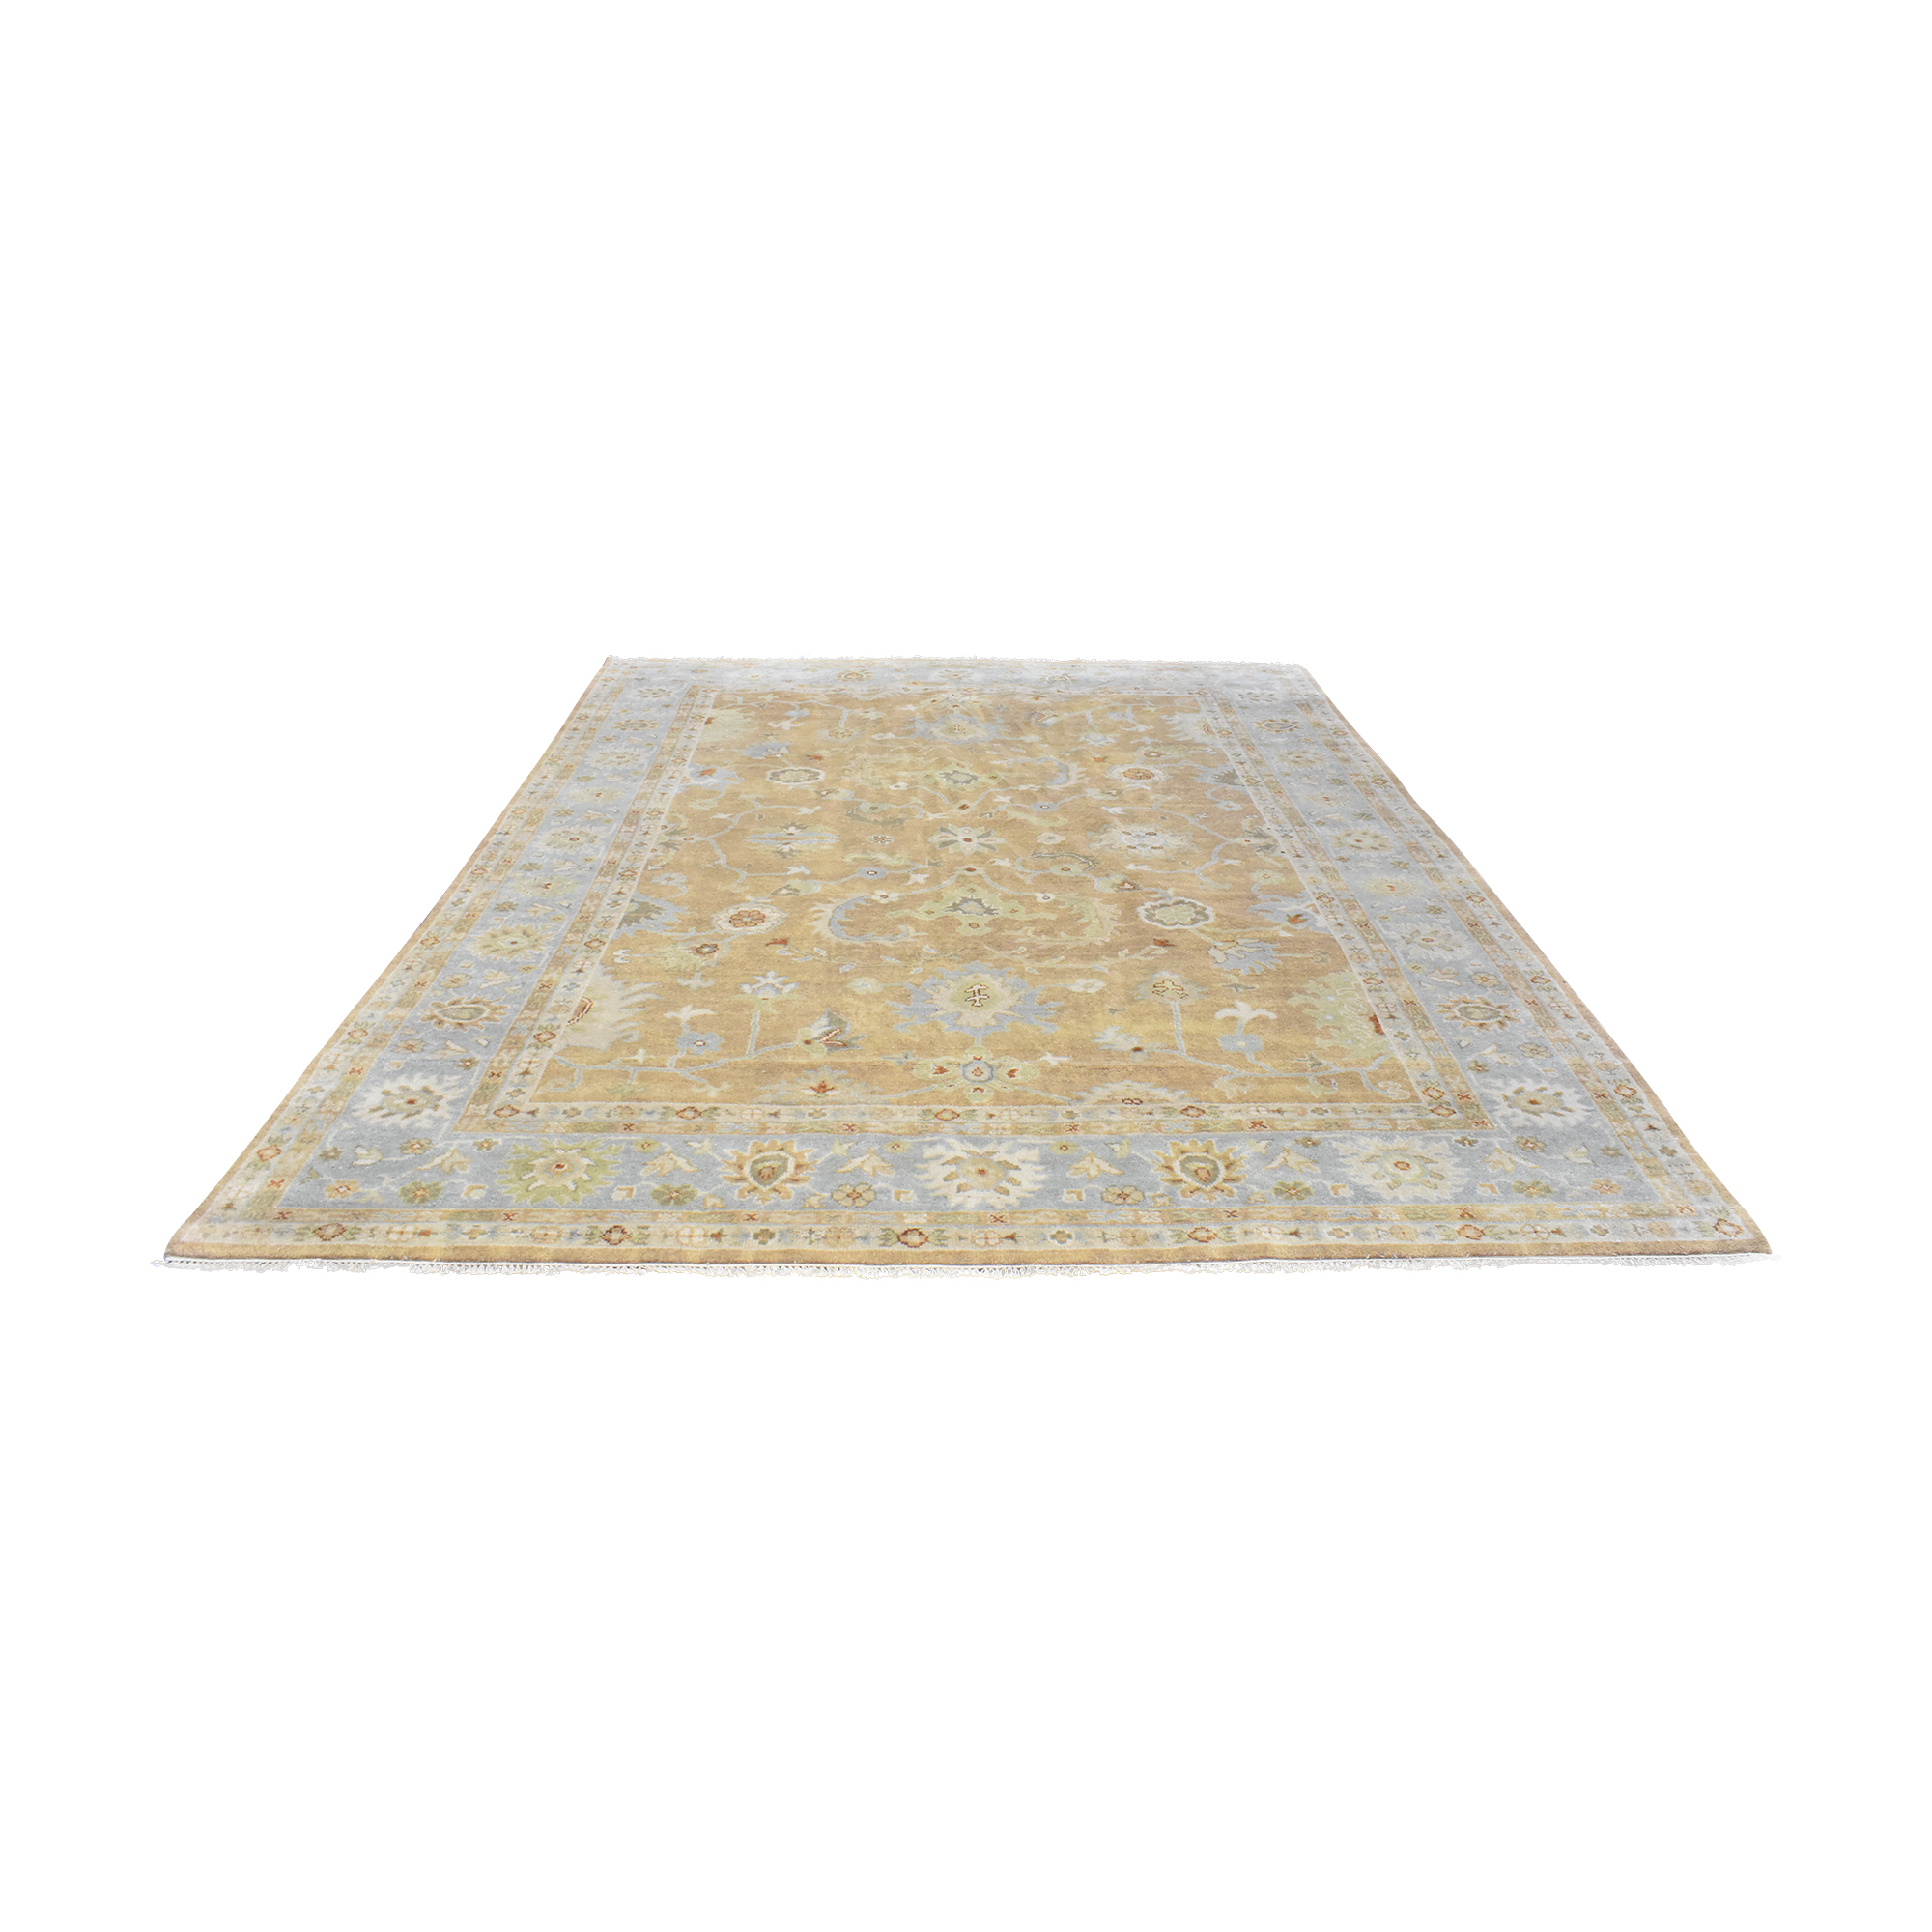 Turkish-Style Patterned Area Rug for sale